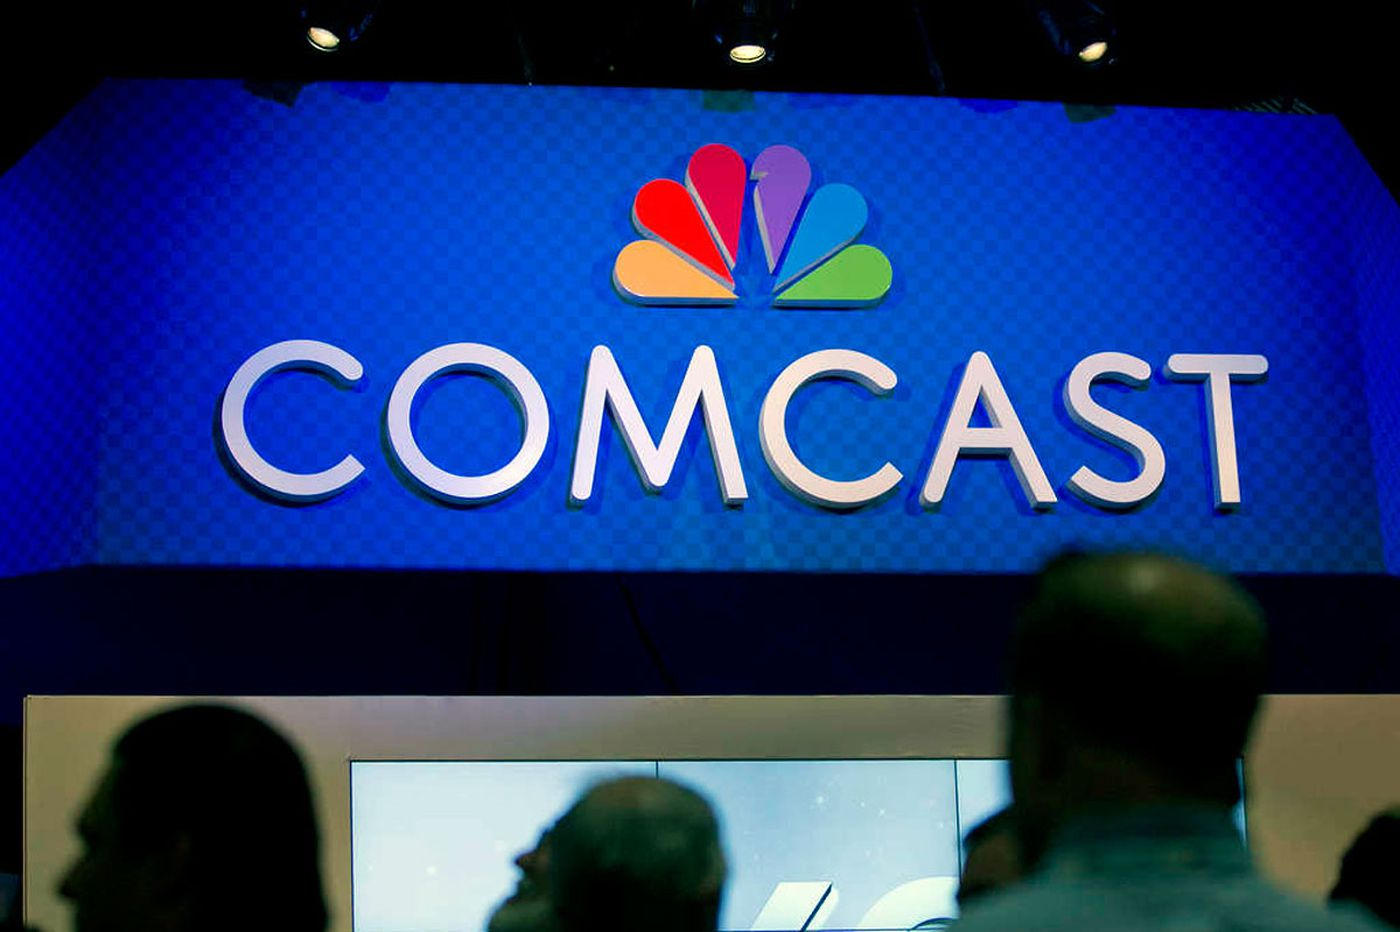 Comcast to pay Calif. $26 million for mishandling waste, files